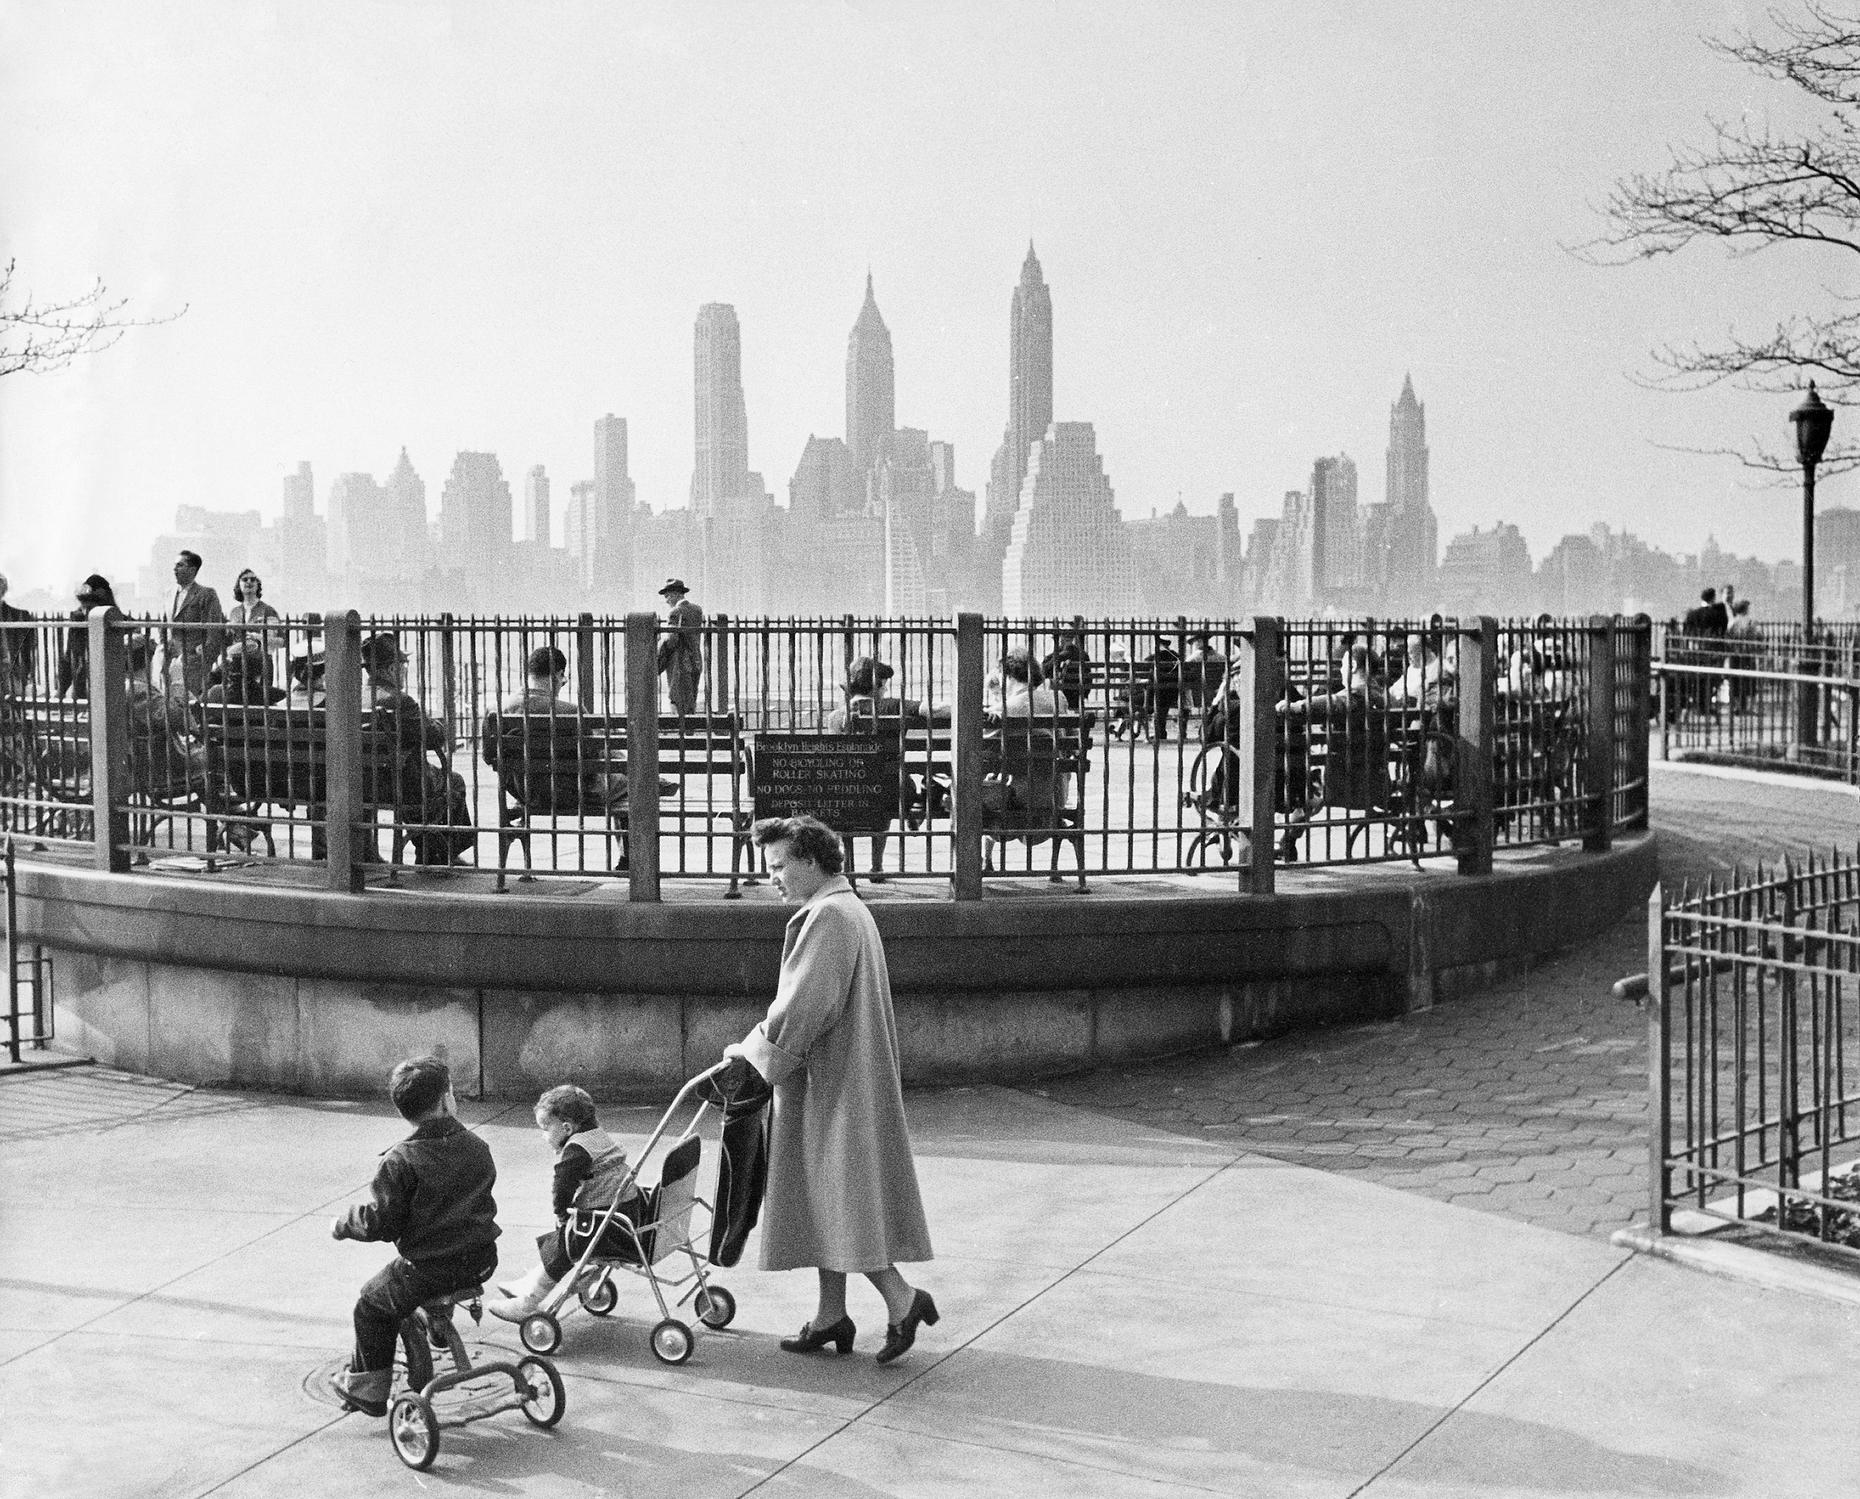 Manhattan, seen from the Brooklyn Promenade (1966) : nyc